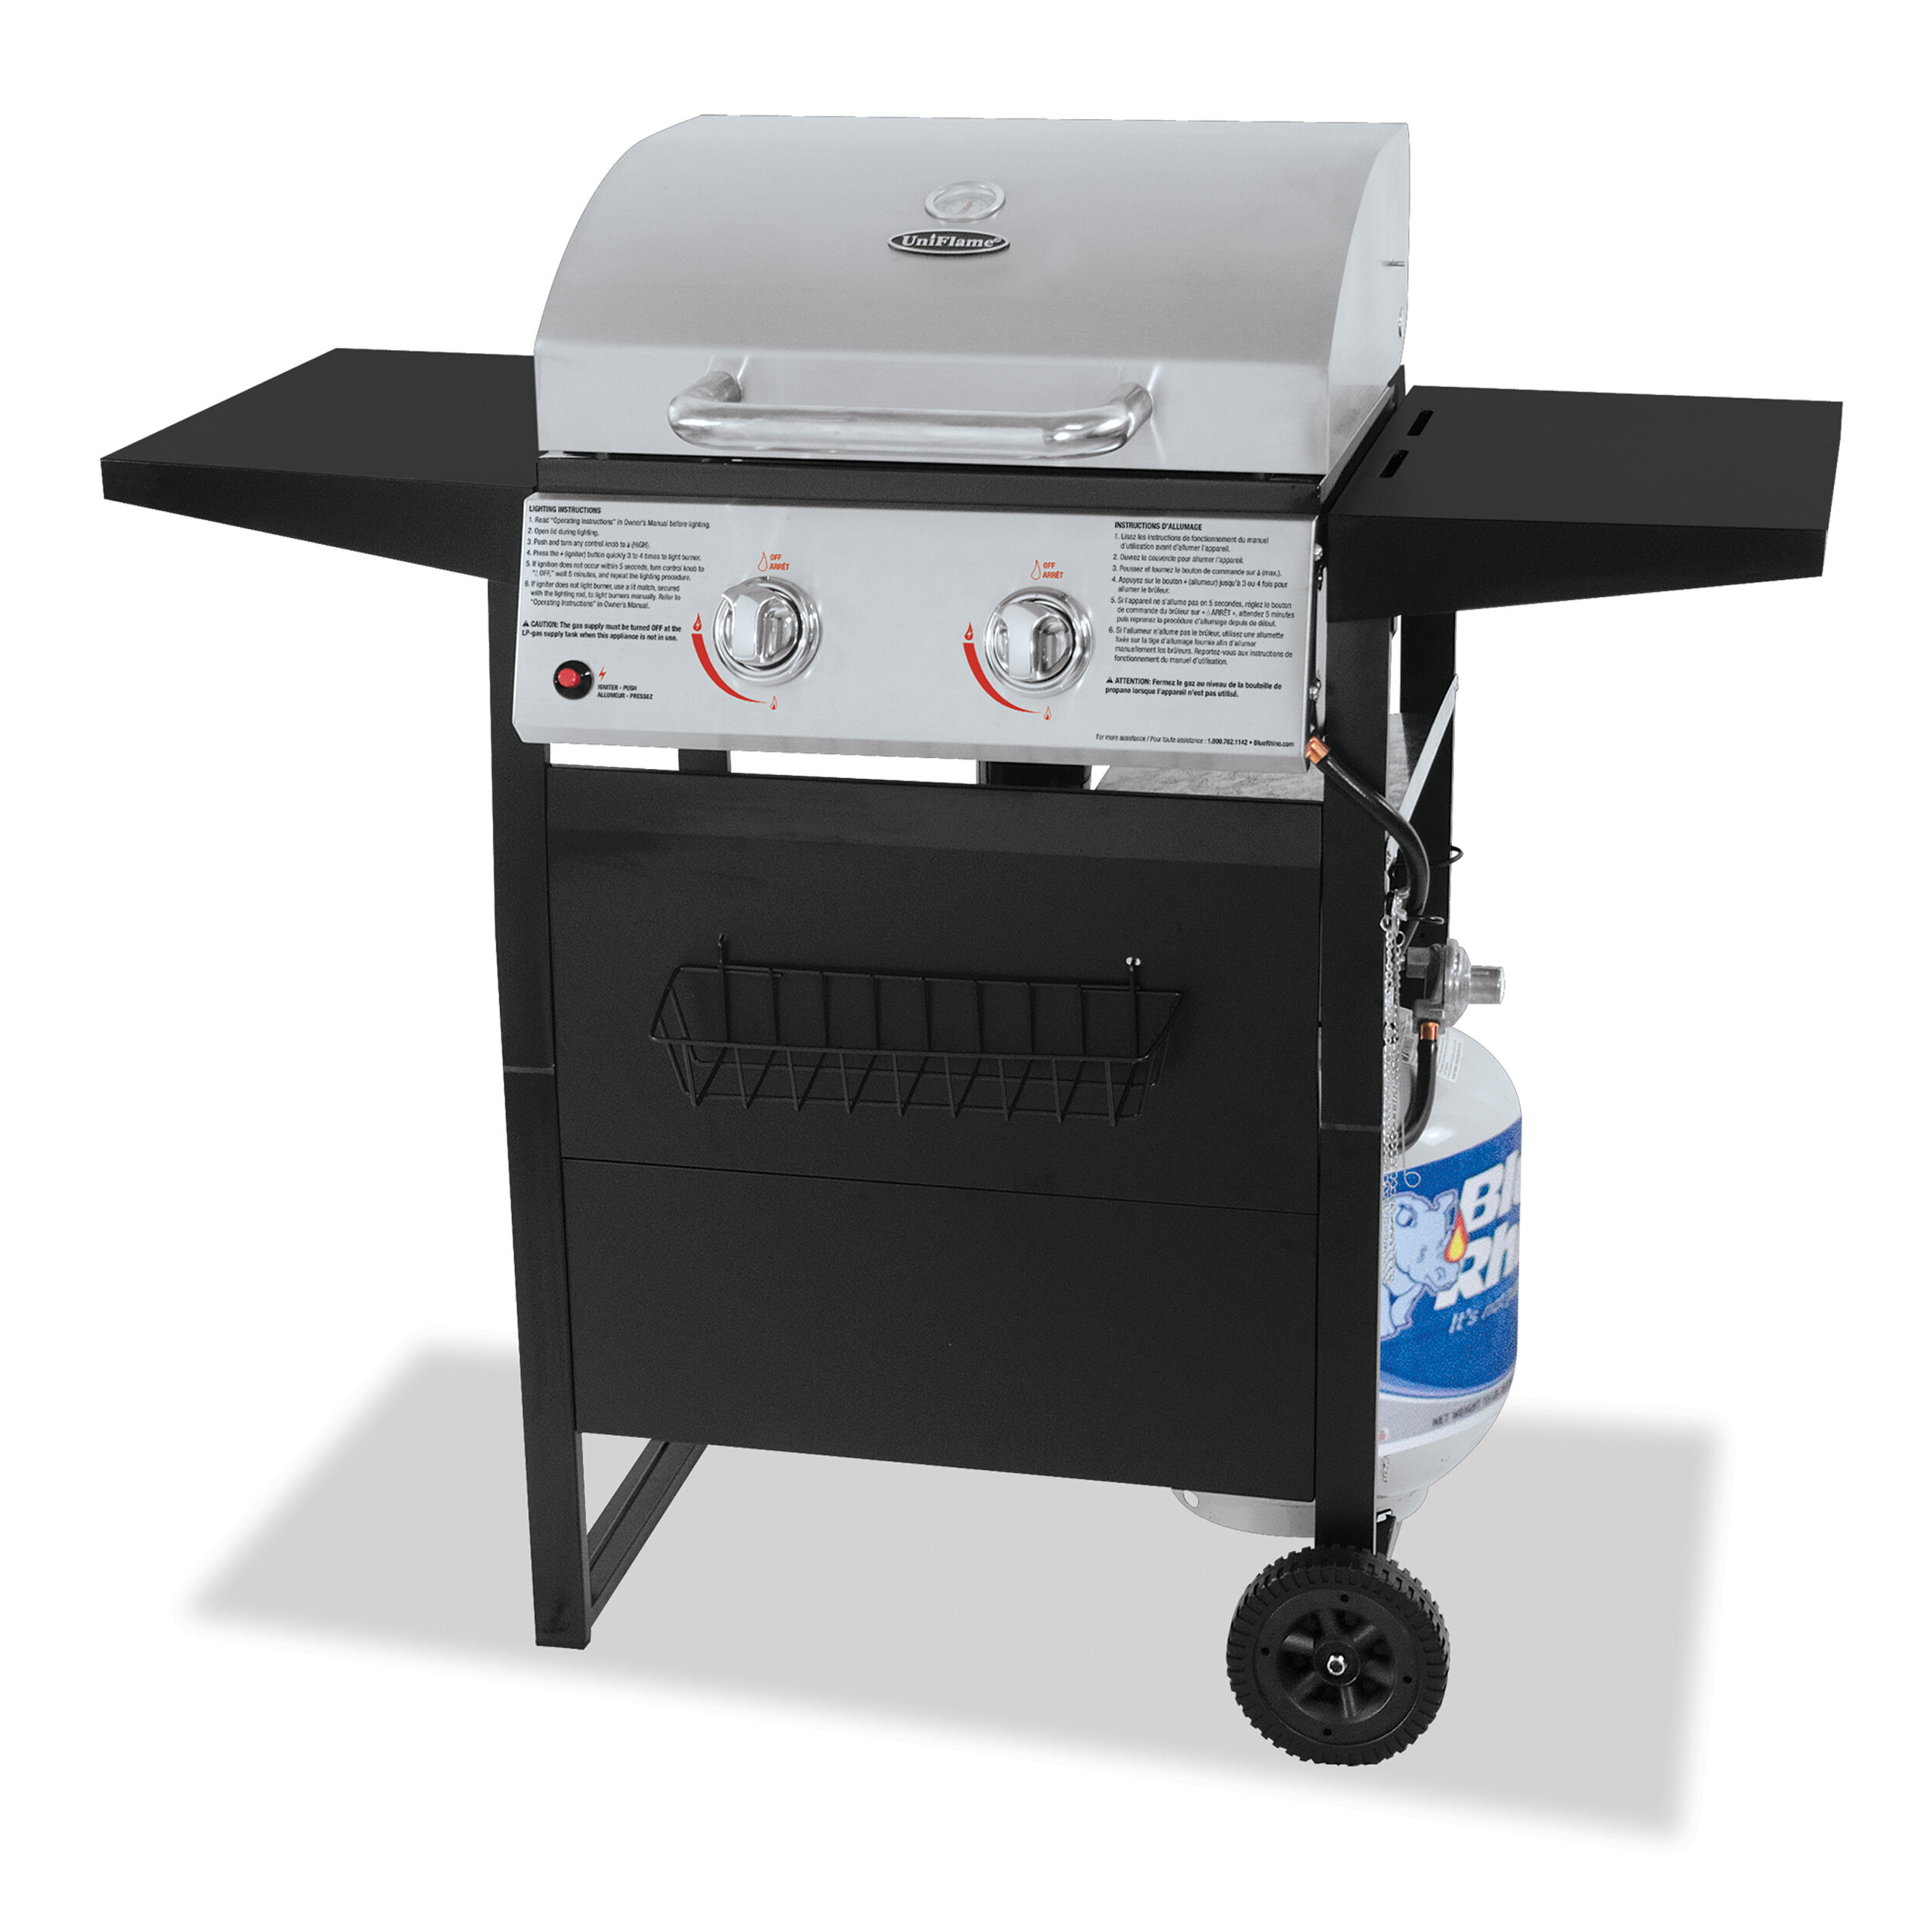 Rhino Outdoor 2-Burner Propane Gas Grill with Side Burner